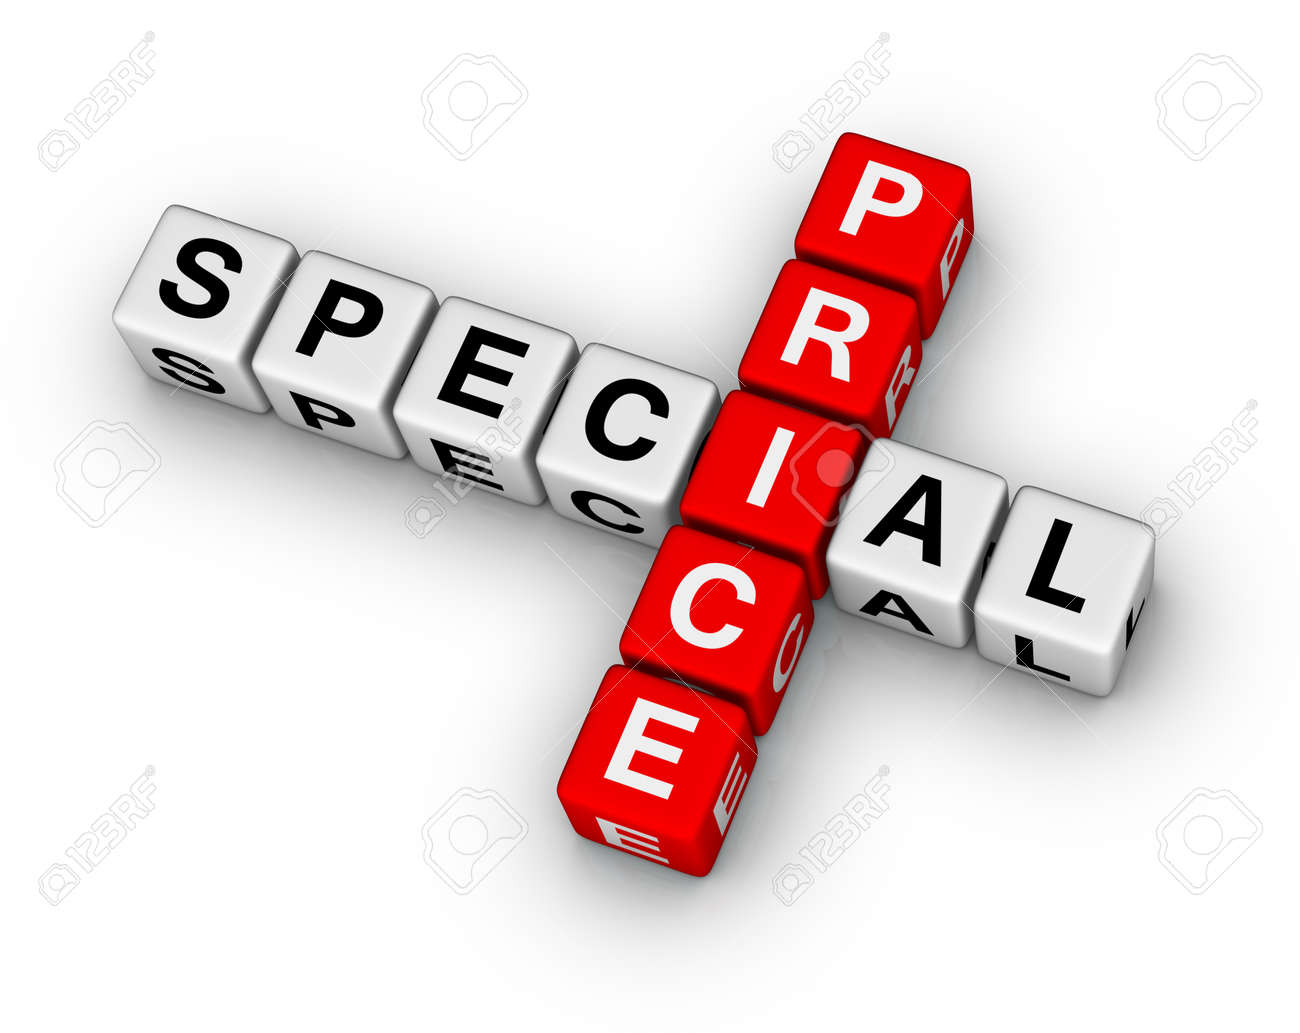 special price 3d crossword puzzle Stock Photo - 10631832